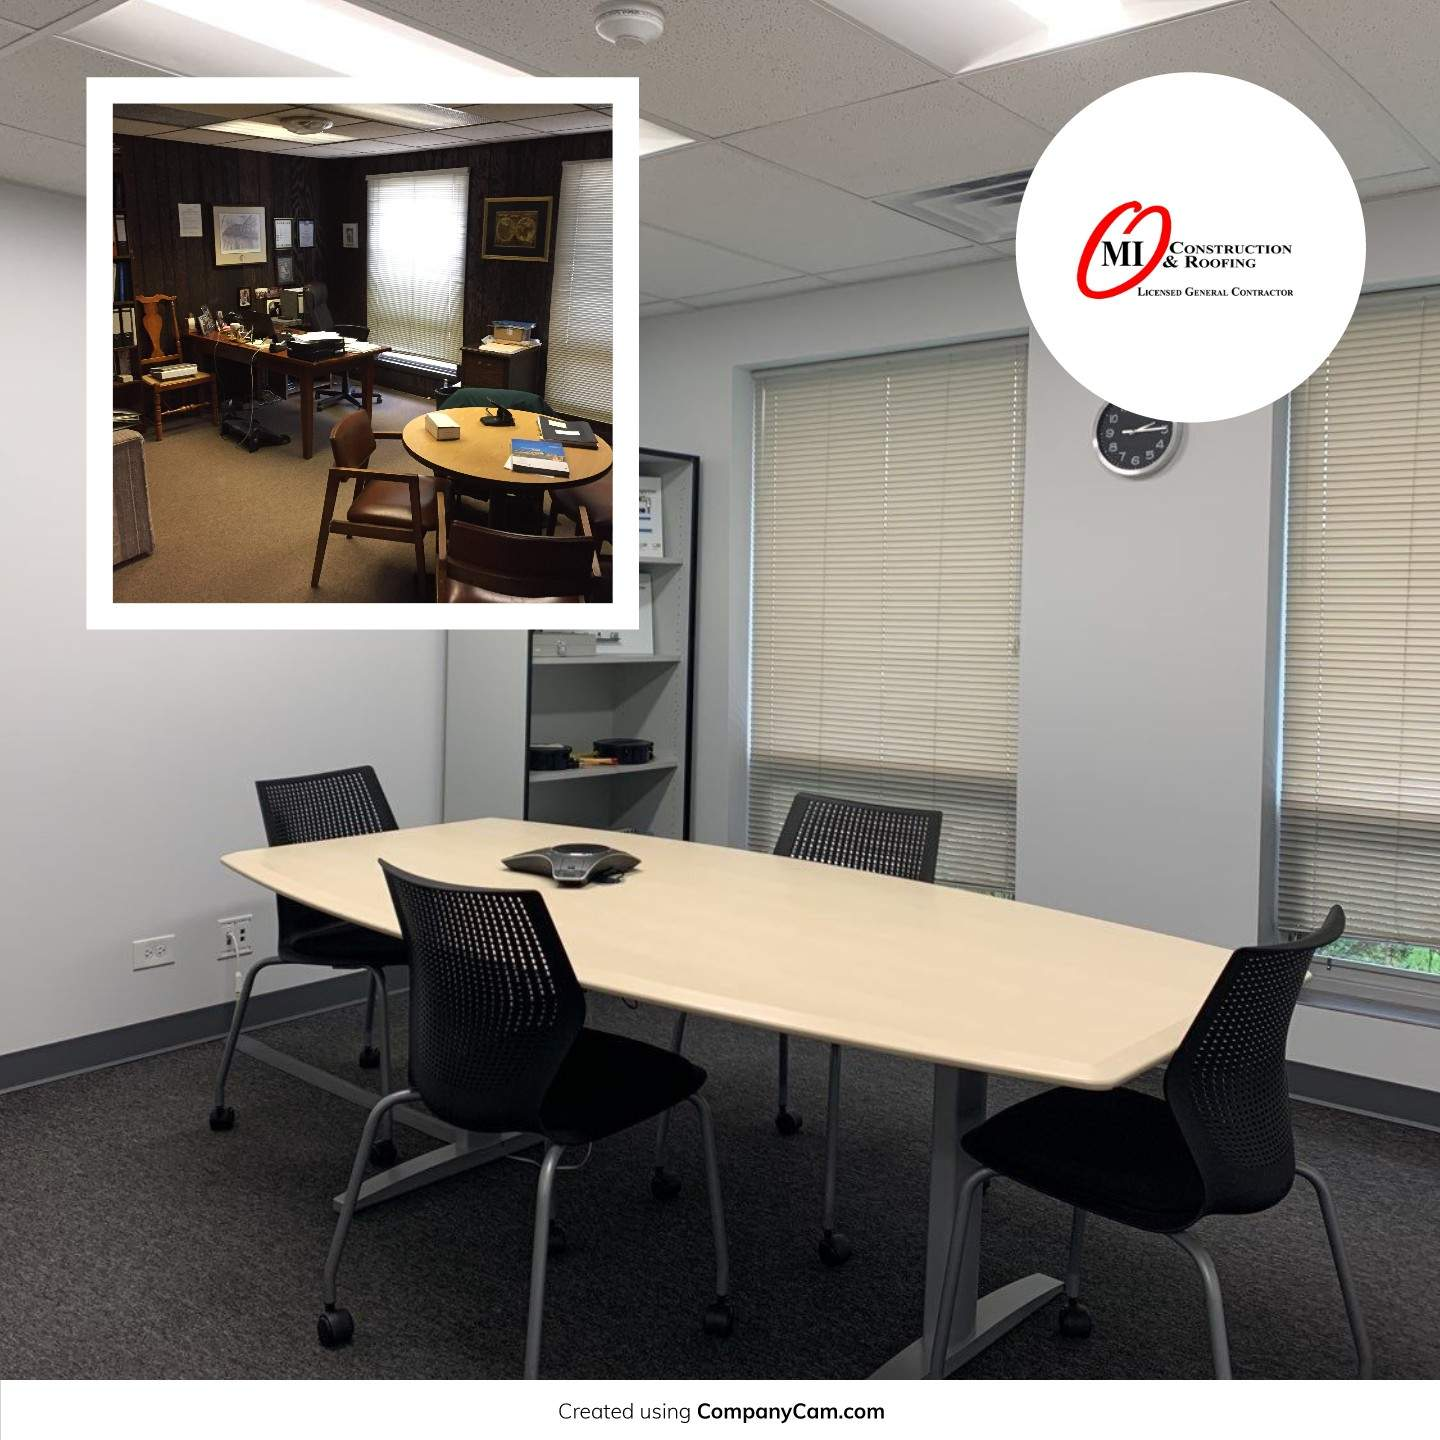 Before-After Conference Room